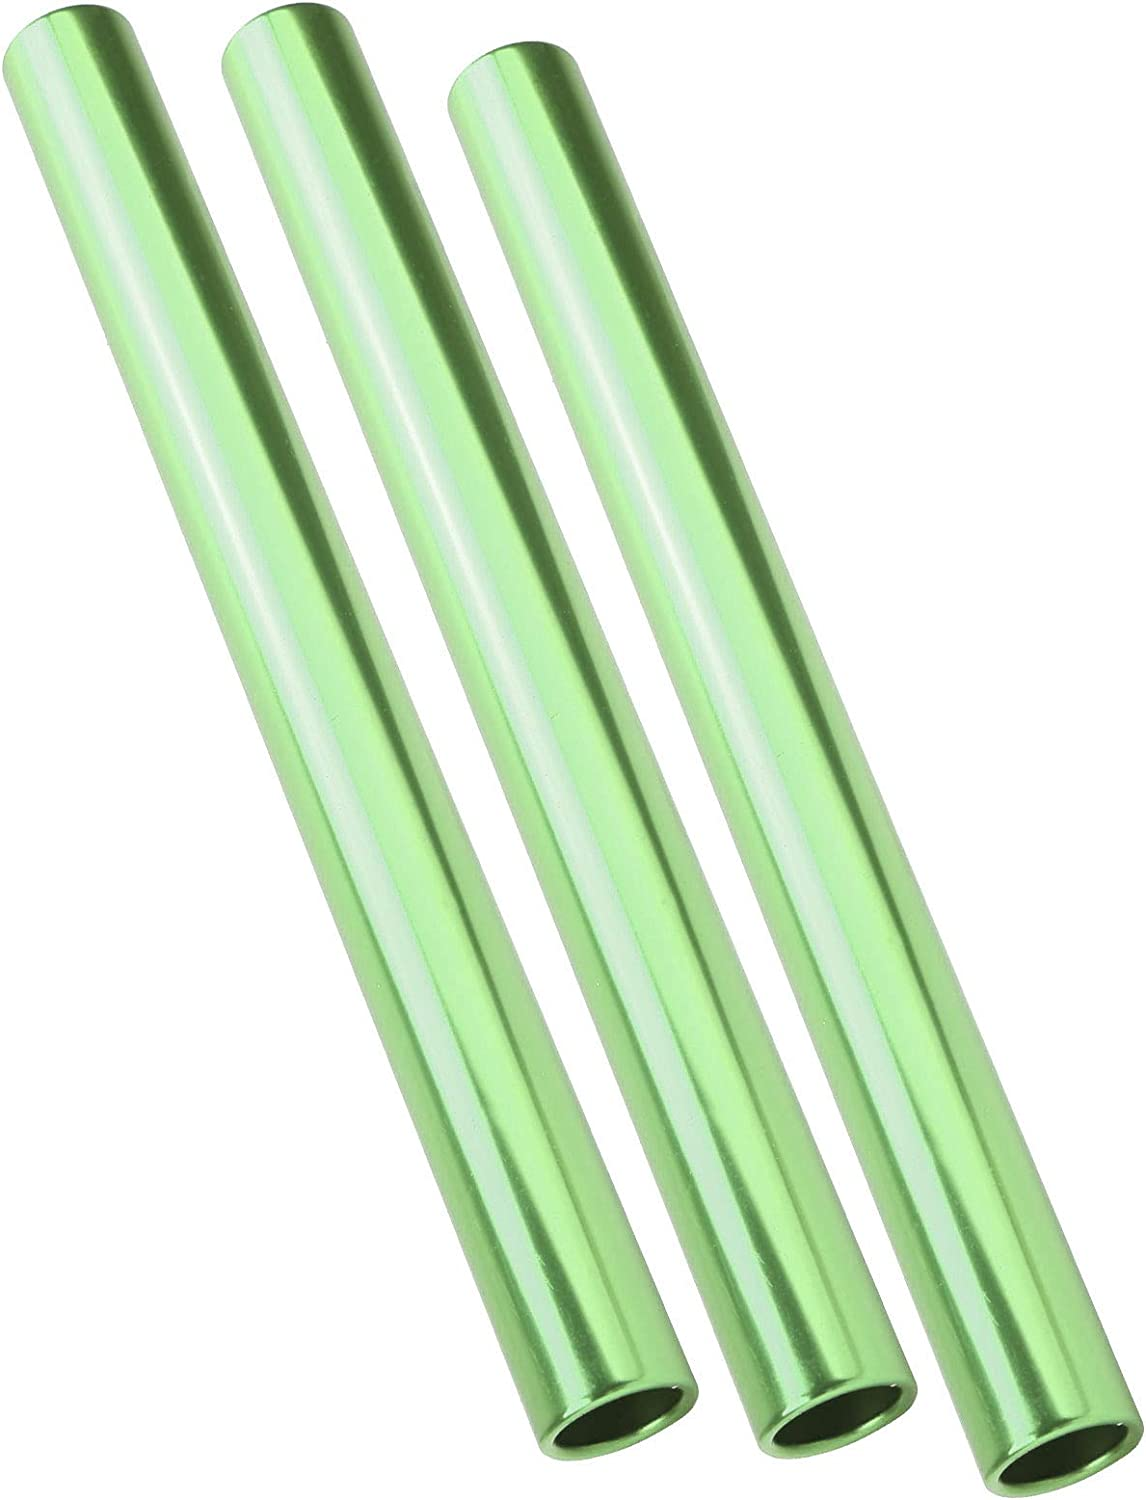 Asixxsix Track and Field Popular popular Relay for Color Bright Batons M ! Super beauty product restock quality top!